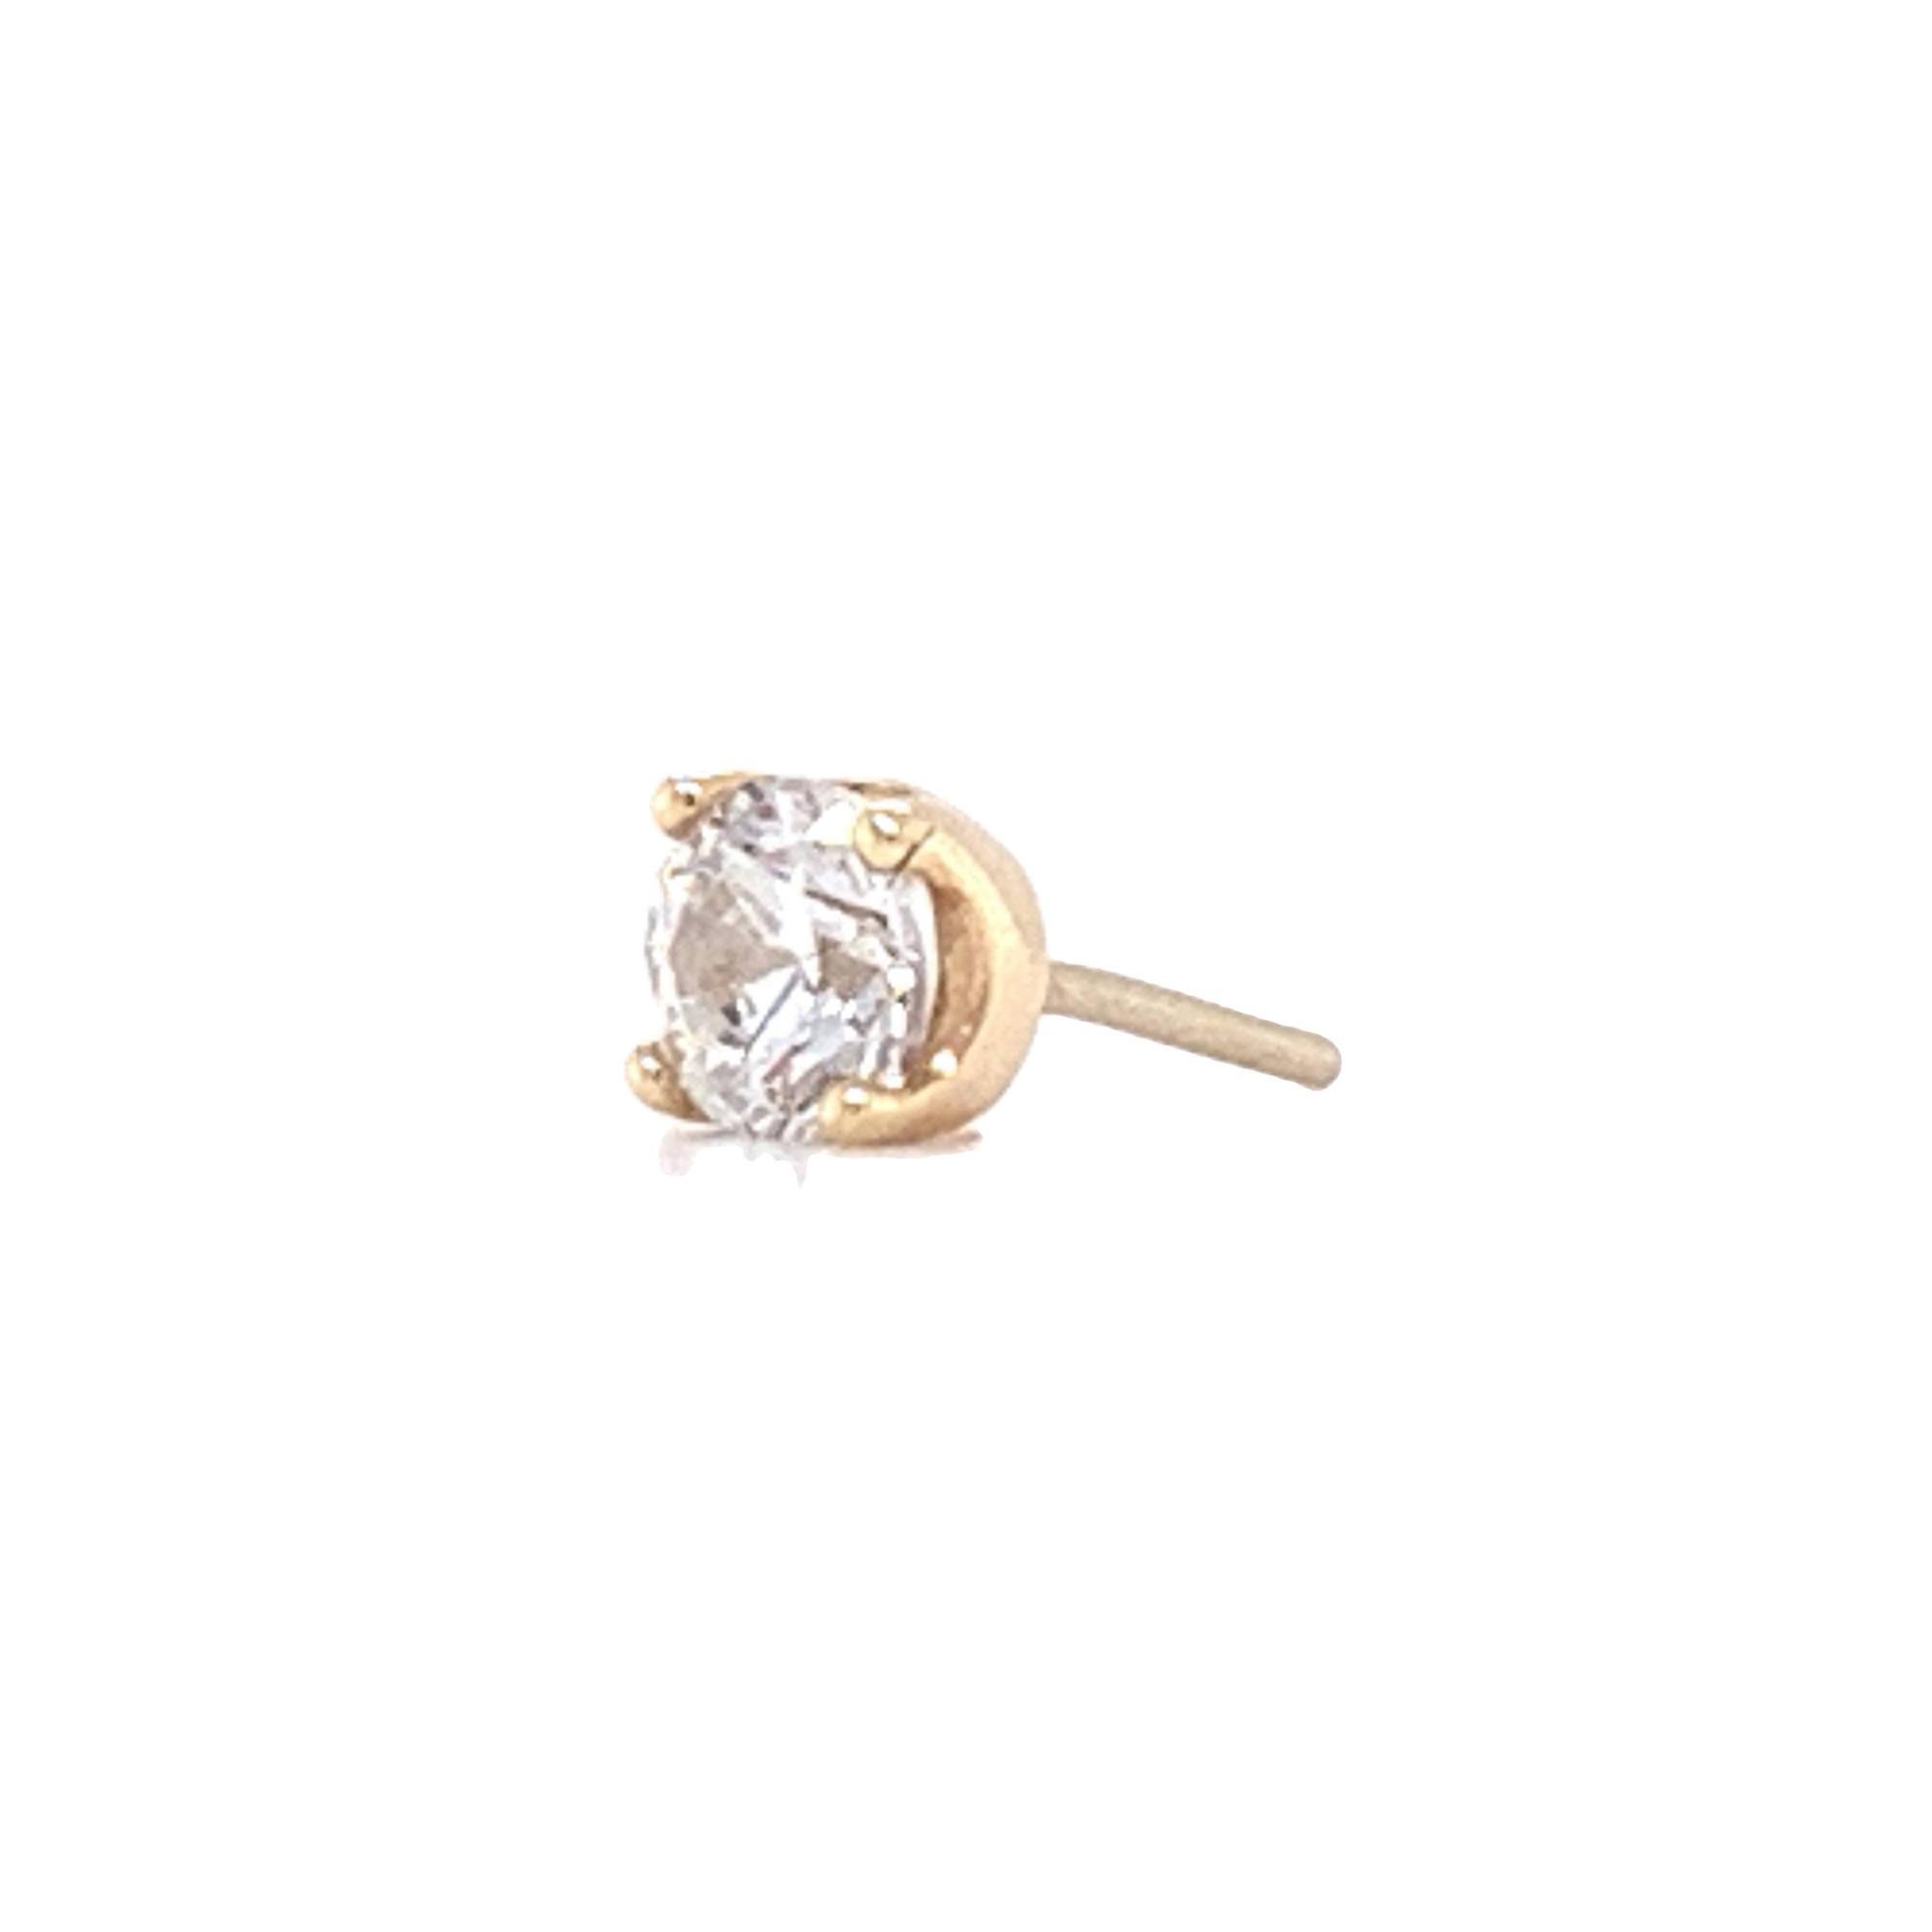 14Ct Gold Prong Set Swarovski End Attachment